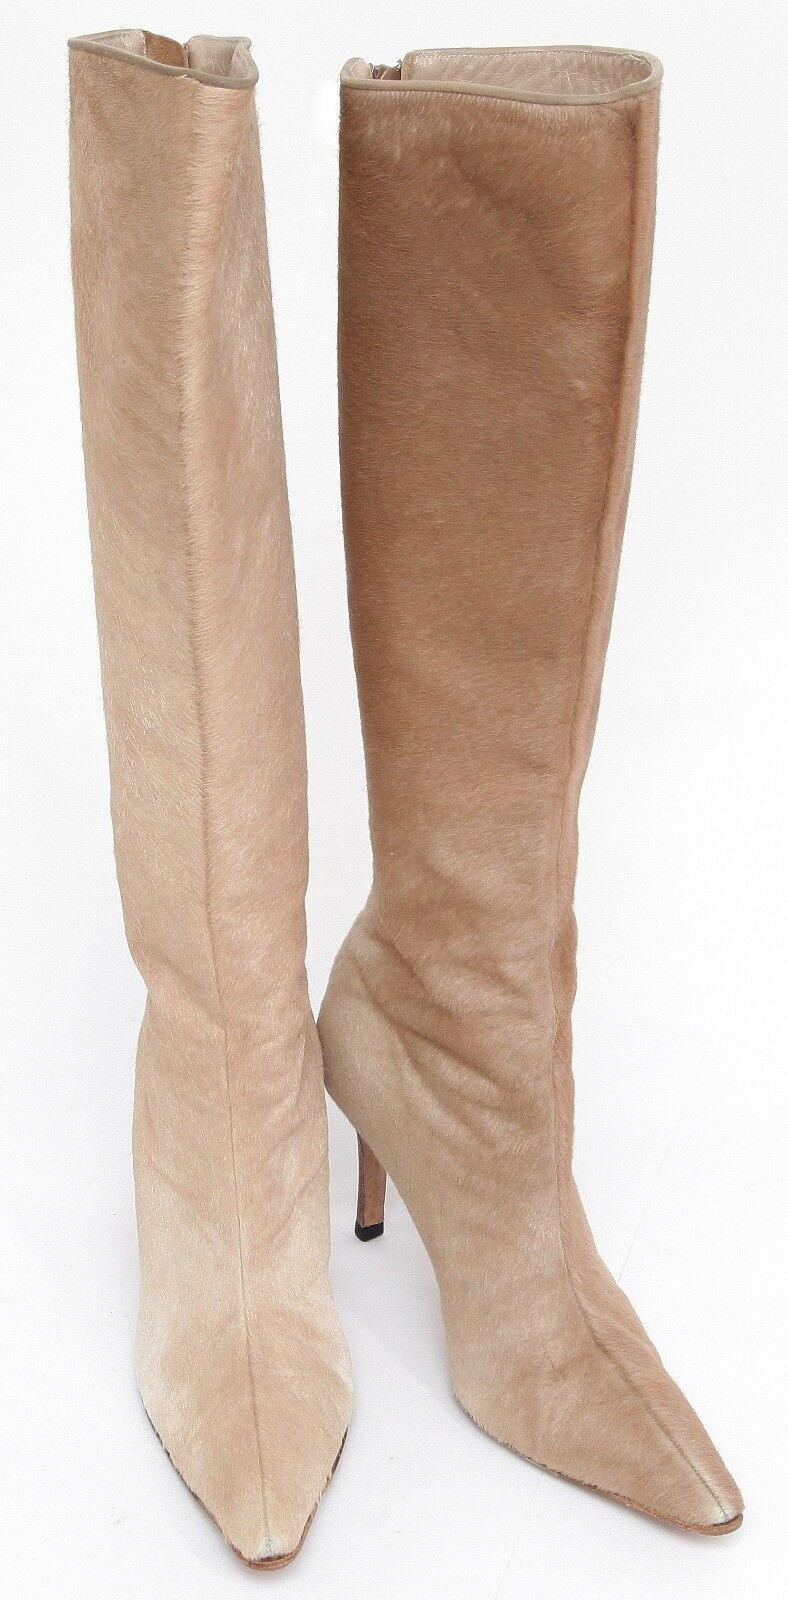 MANOLO BLAHNIK Stiefel Knee High Pointed Toe Pony Hair Suede Leather Zipper 36.5